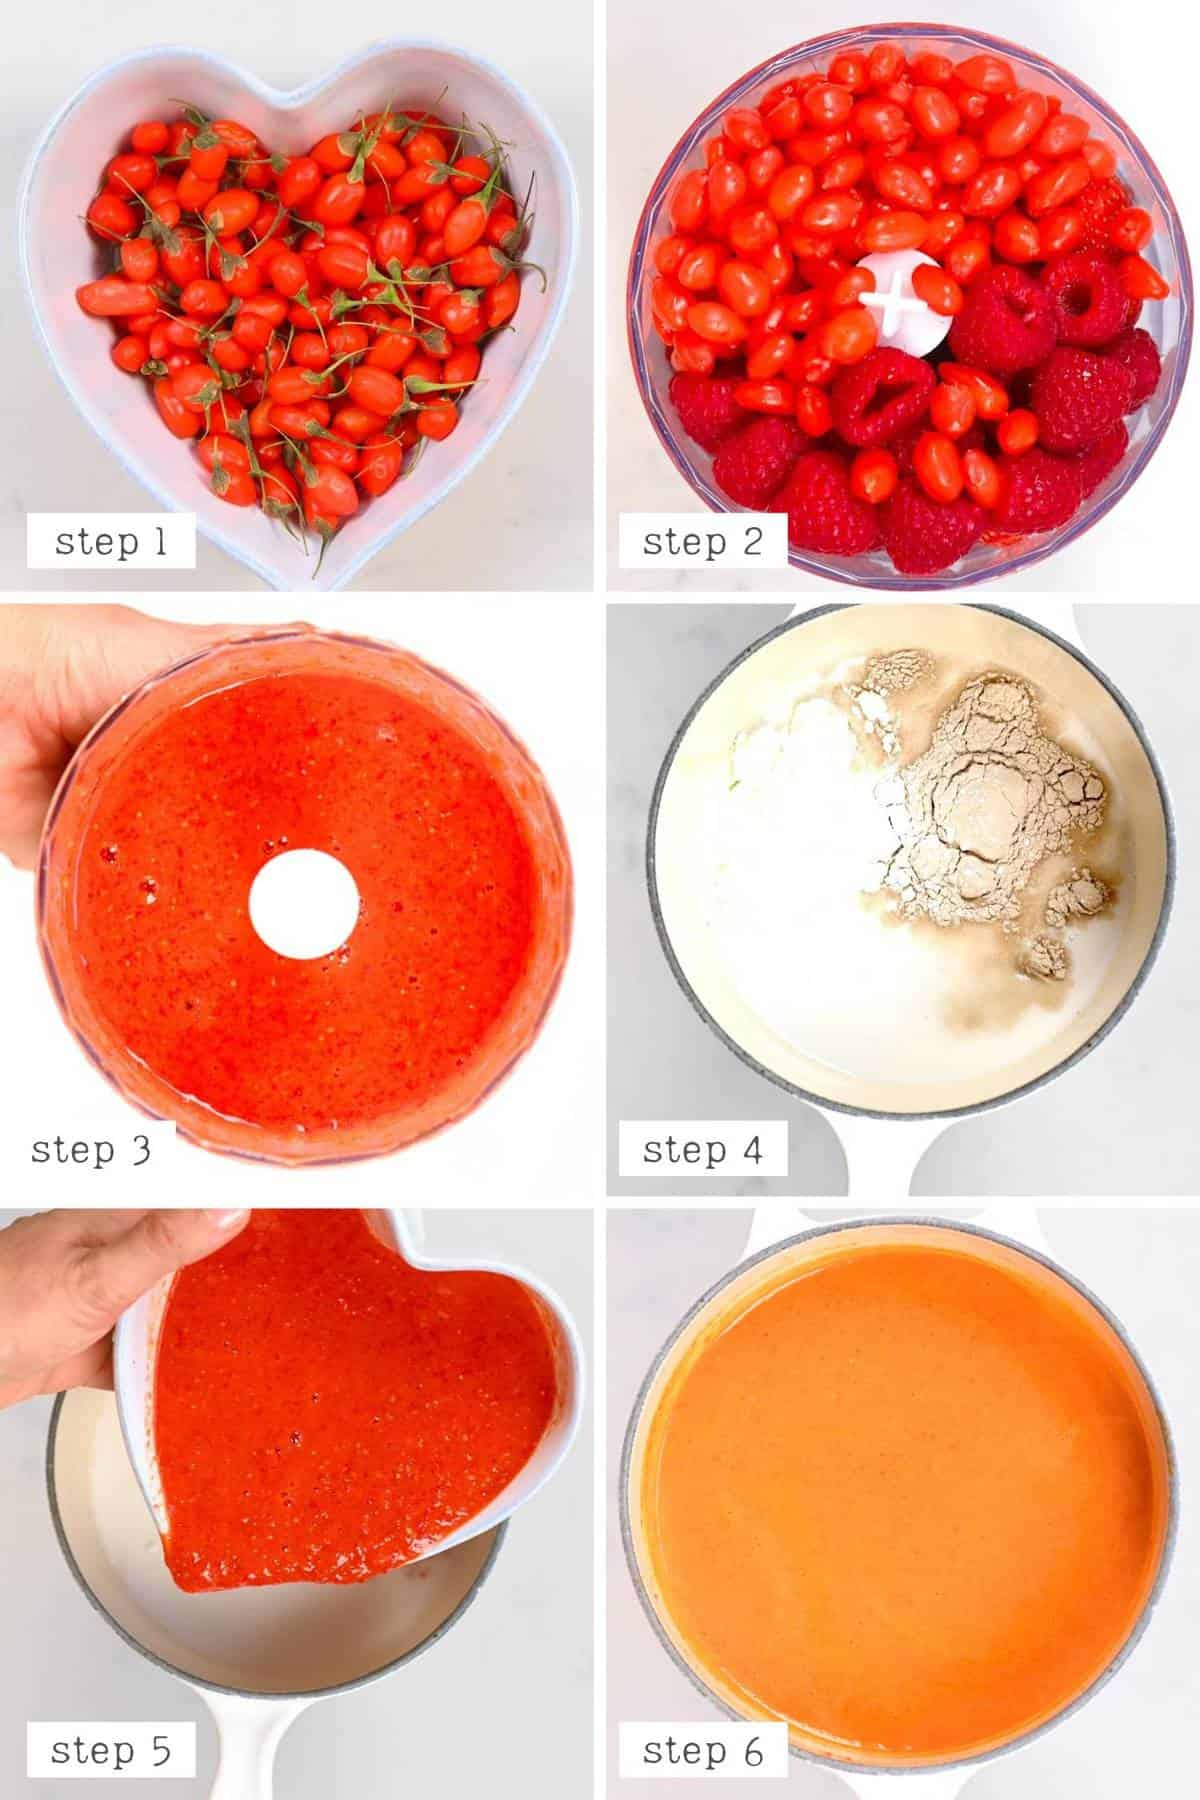 steps for making the filling for the goji berry tart